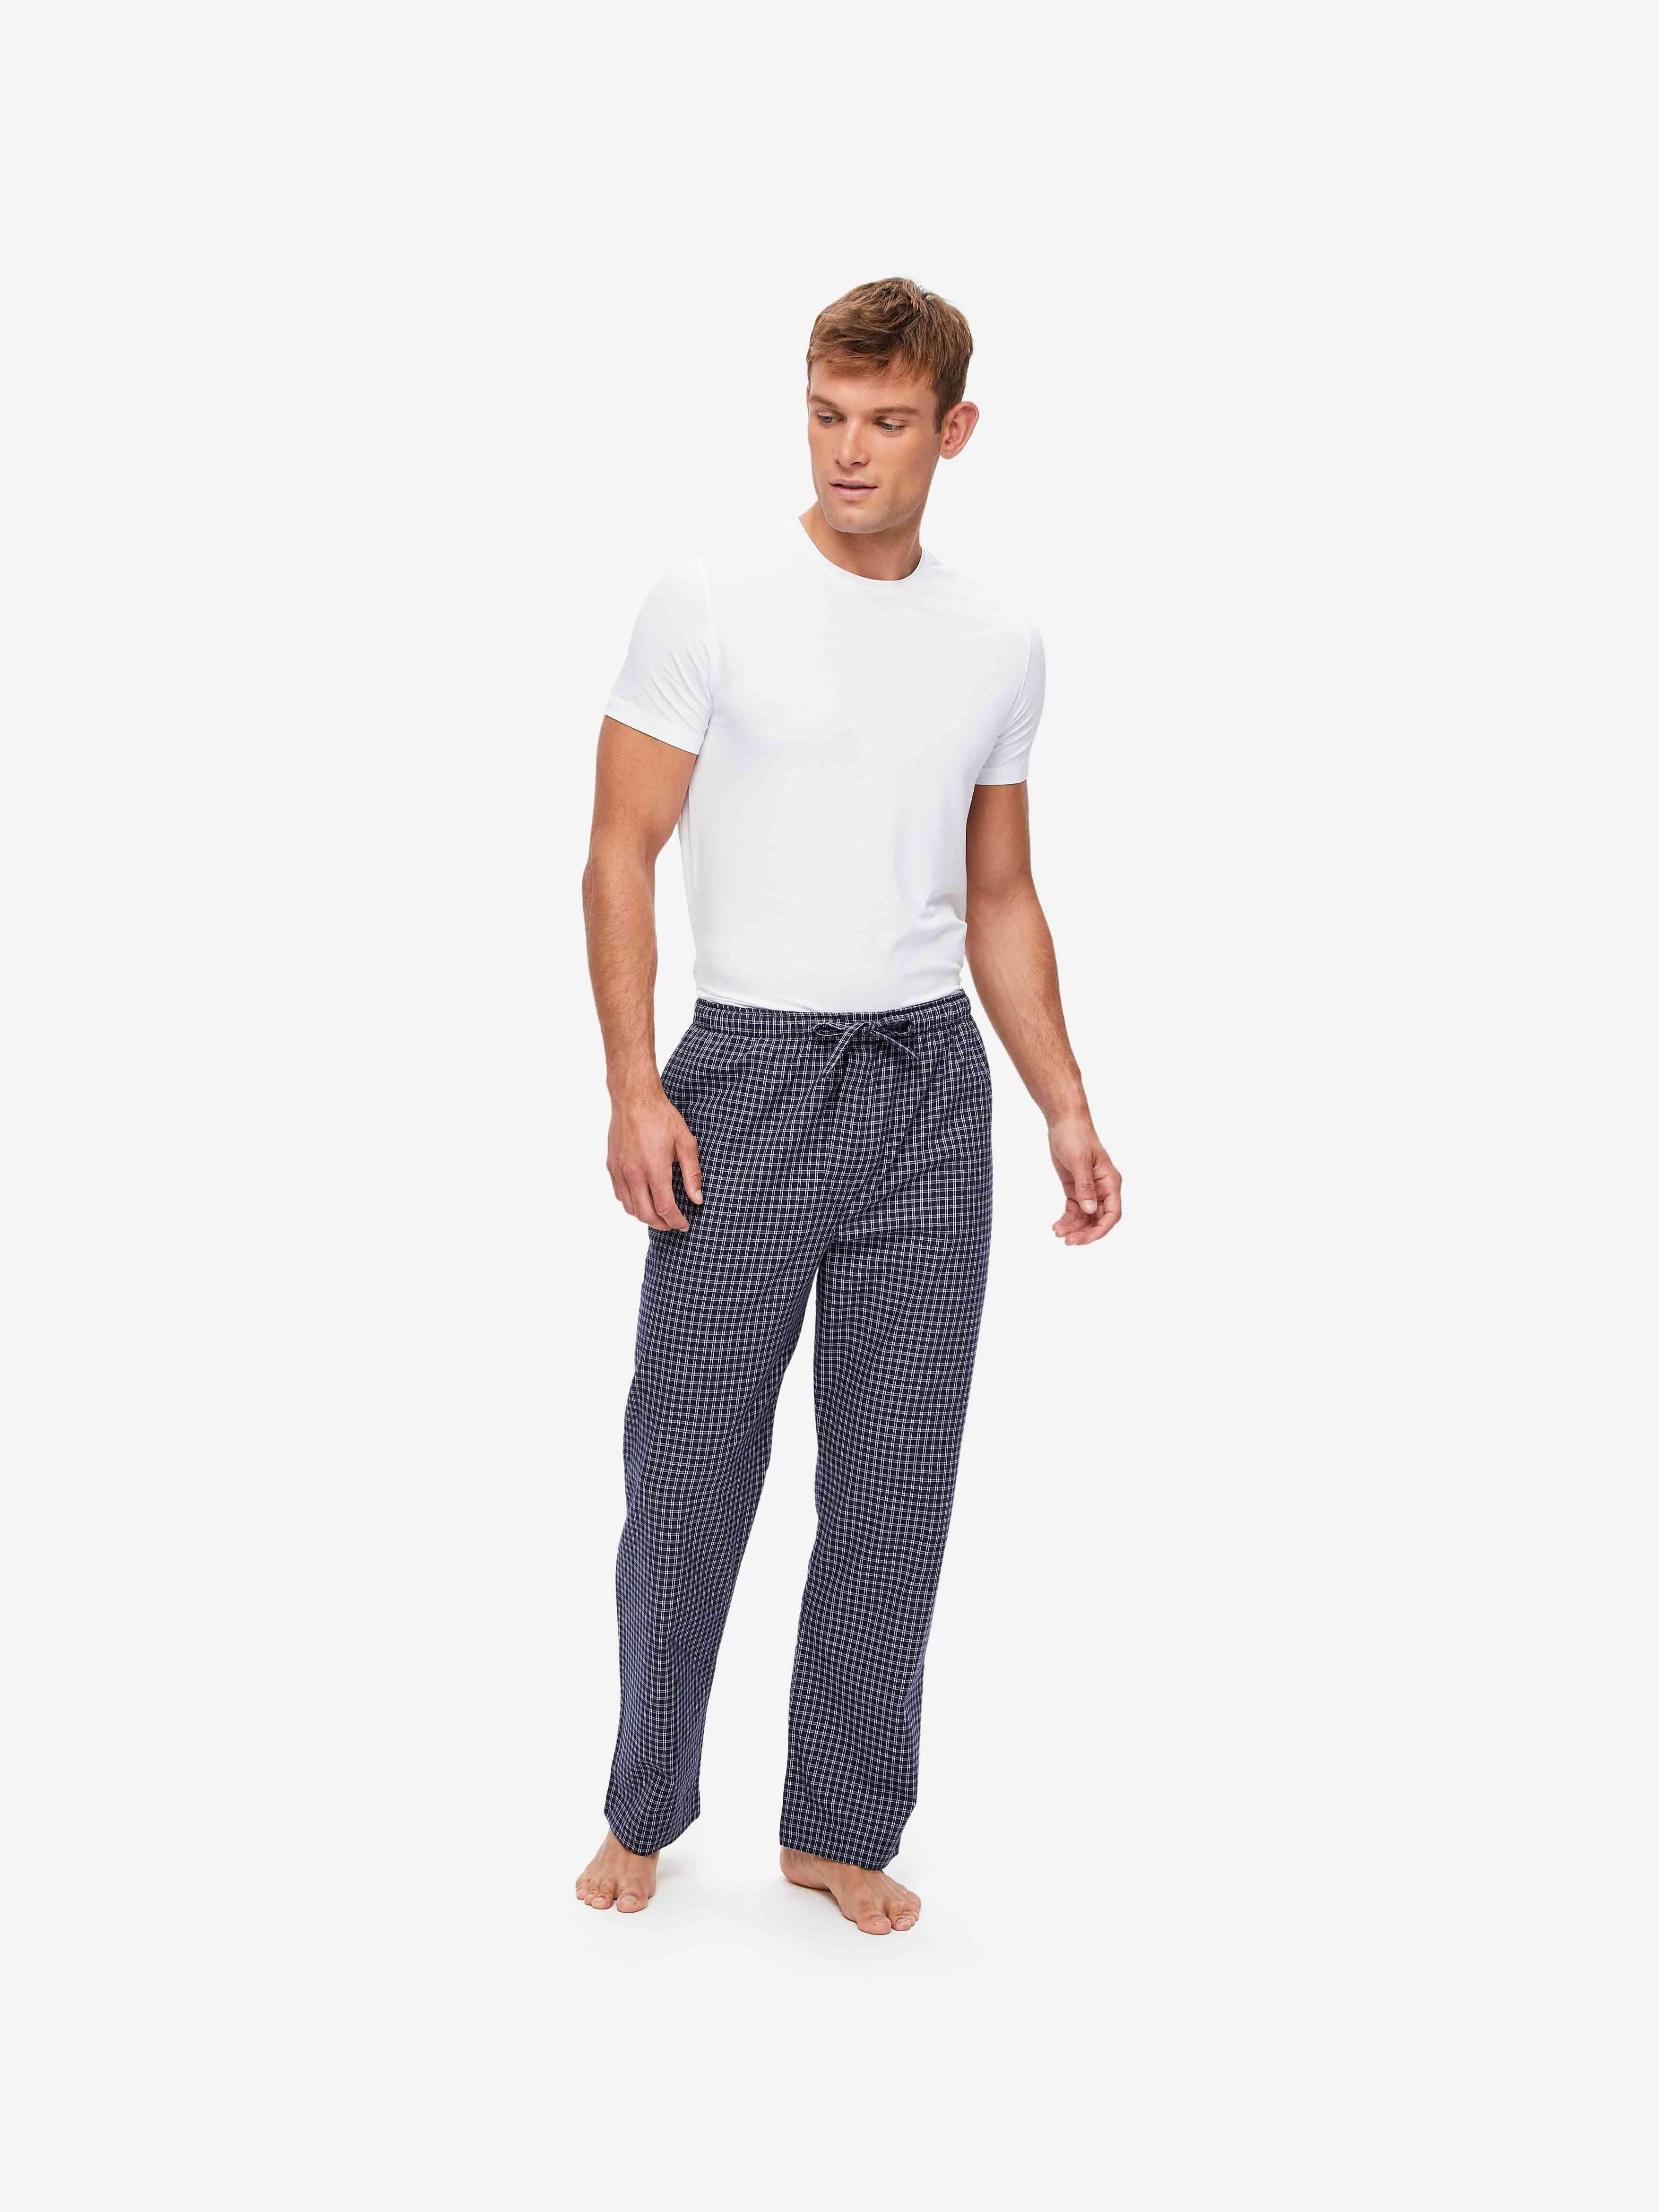 Men's Lounge Trousers Braemar 32 Brushed Cotton Navy